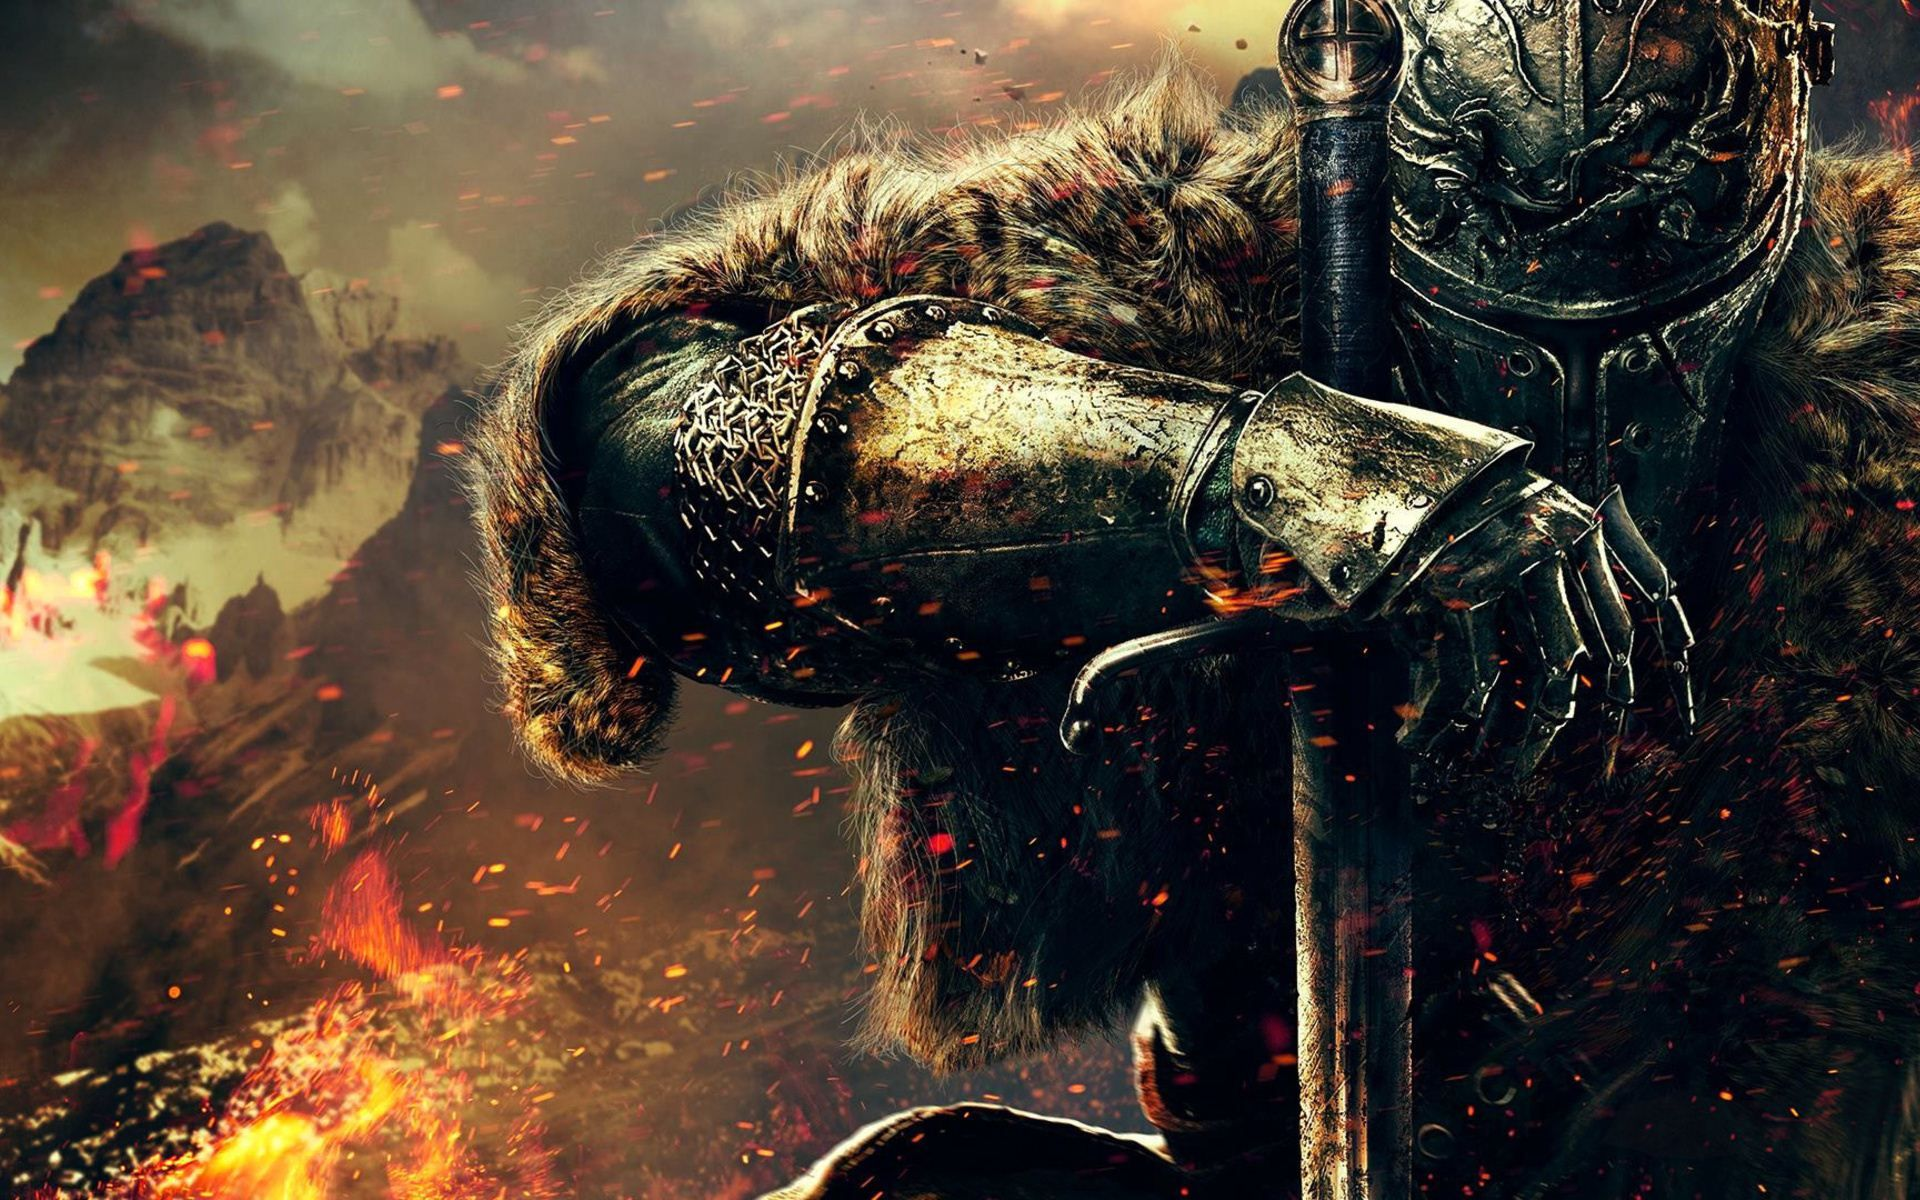 Dark Souls 3 Wallpaper High Quality Is Cool Wallpapers Dark Souls Wallpaper Dark Souls 2 Dark Souls